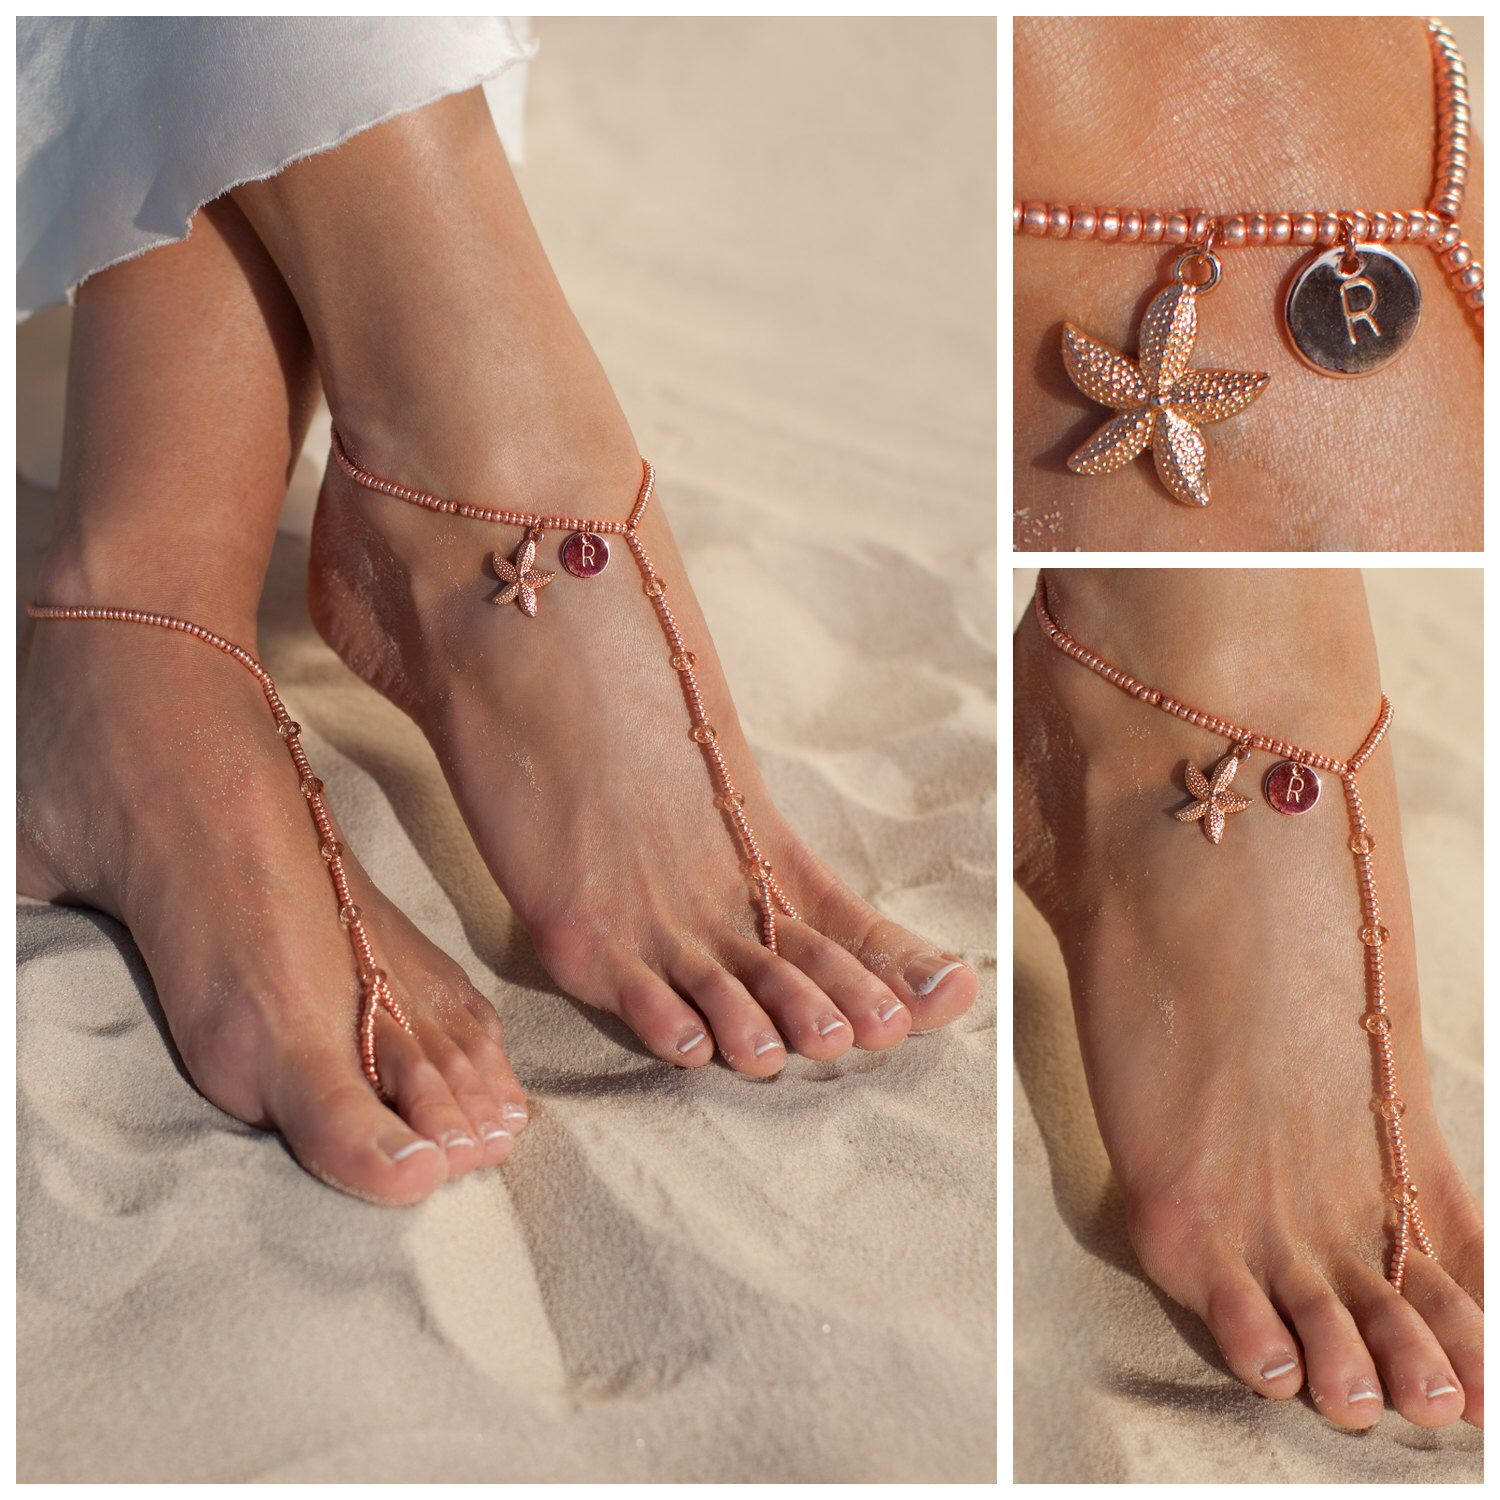 barefoot beach sandal with accessory foot collections rhinestone chain toe dbdd crystal wedding anklet ring products jewelry